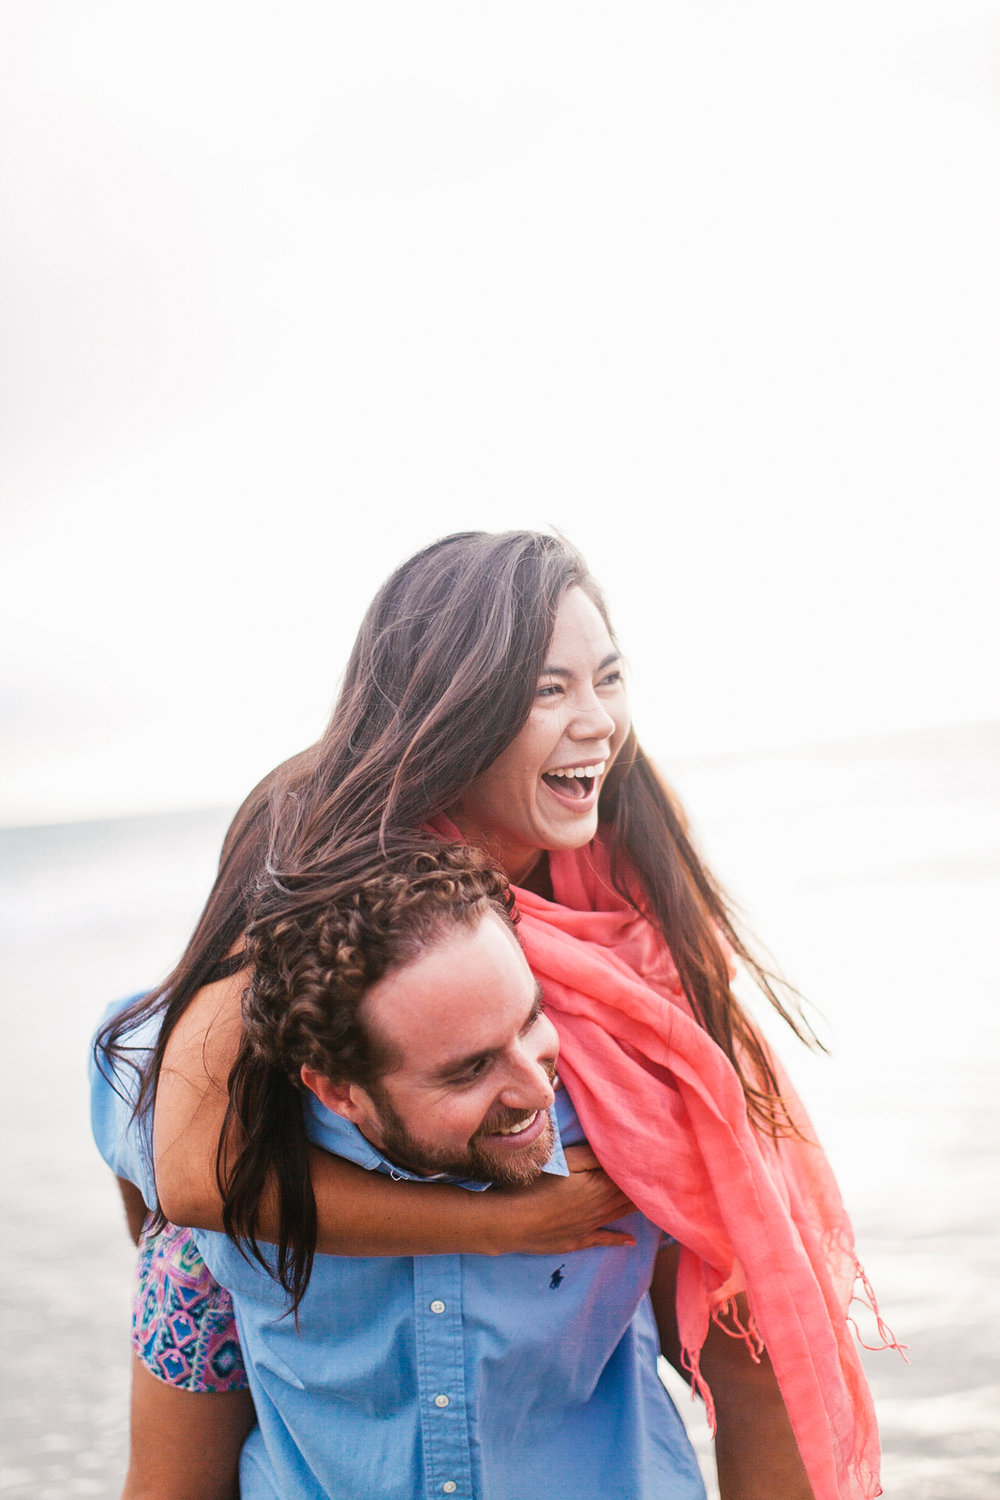 VENICE_BEACH_ENGAGEMENT_PHOTOGRAPHY_EBONY_SIOVHAN_BOKEH_PHOTOGRAPHY_-7.jpg